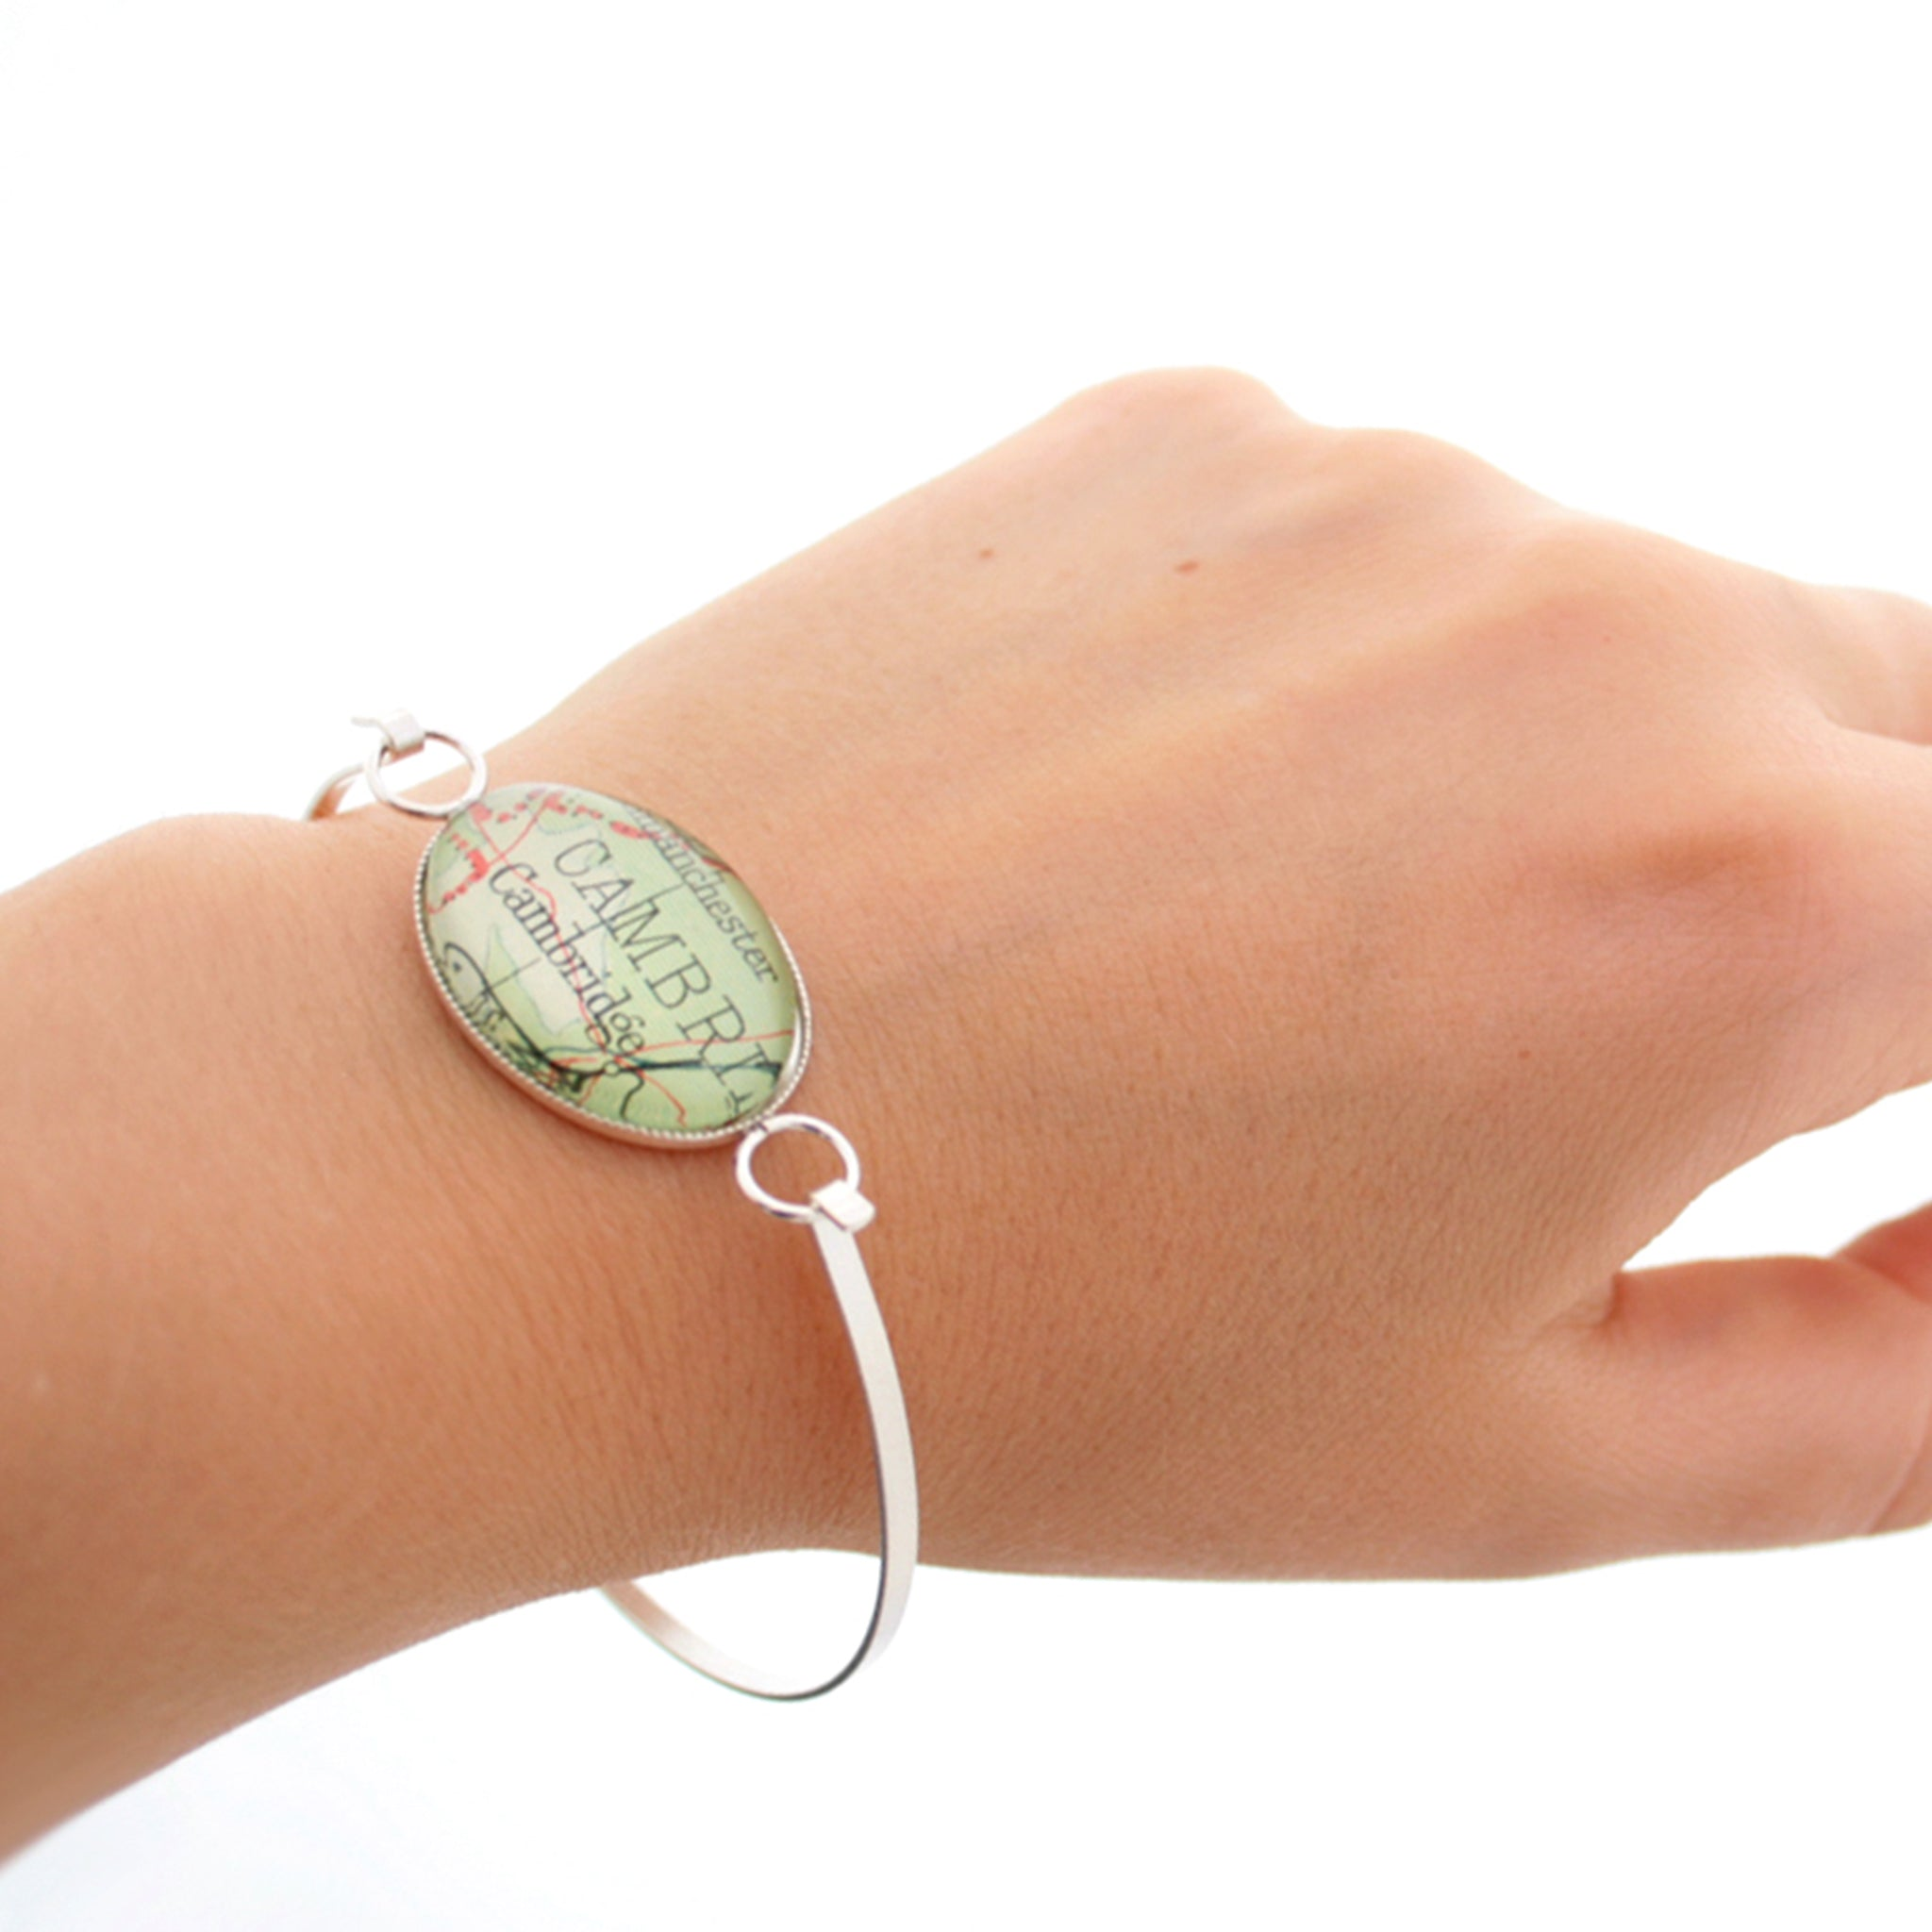 Sterling silver bangle bracelet featuring map of Cambridge worn on hand